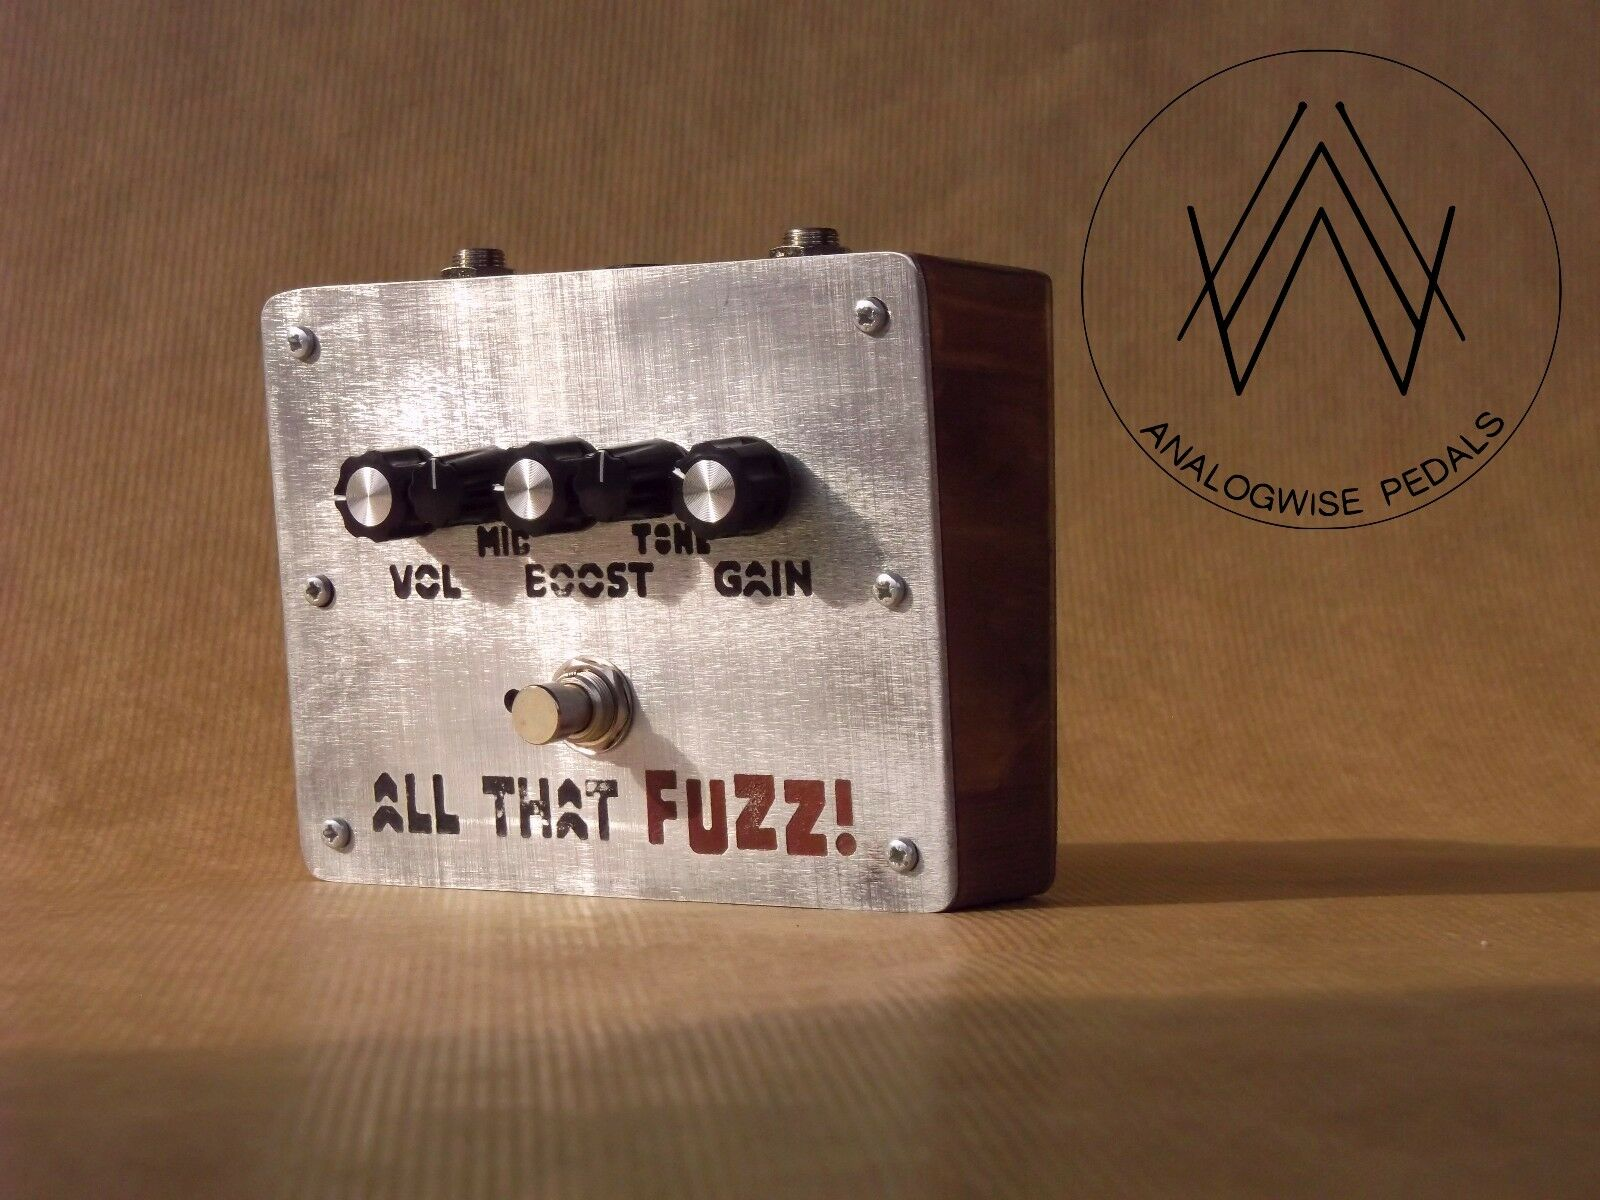 All That Fuzz  by Analogwise Pedals. The nastiest germanium fuzz pedal out there